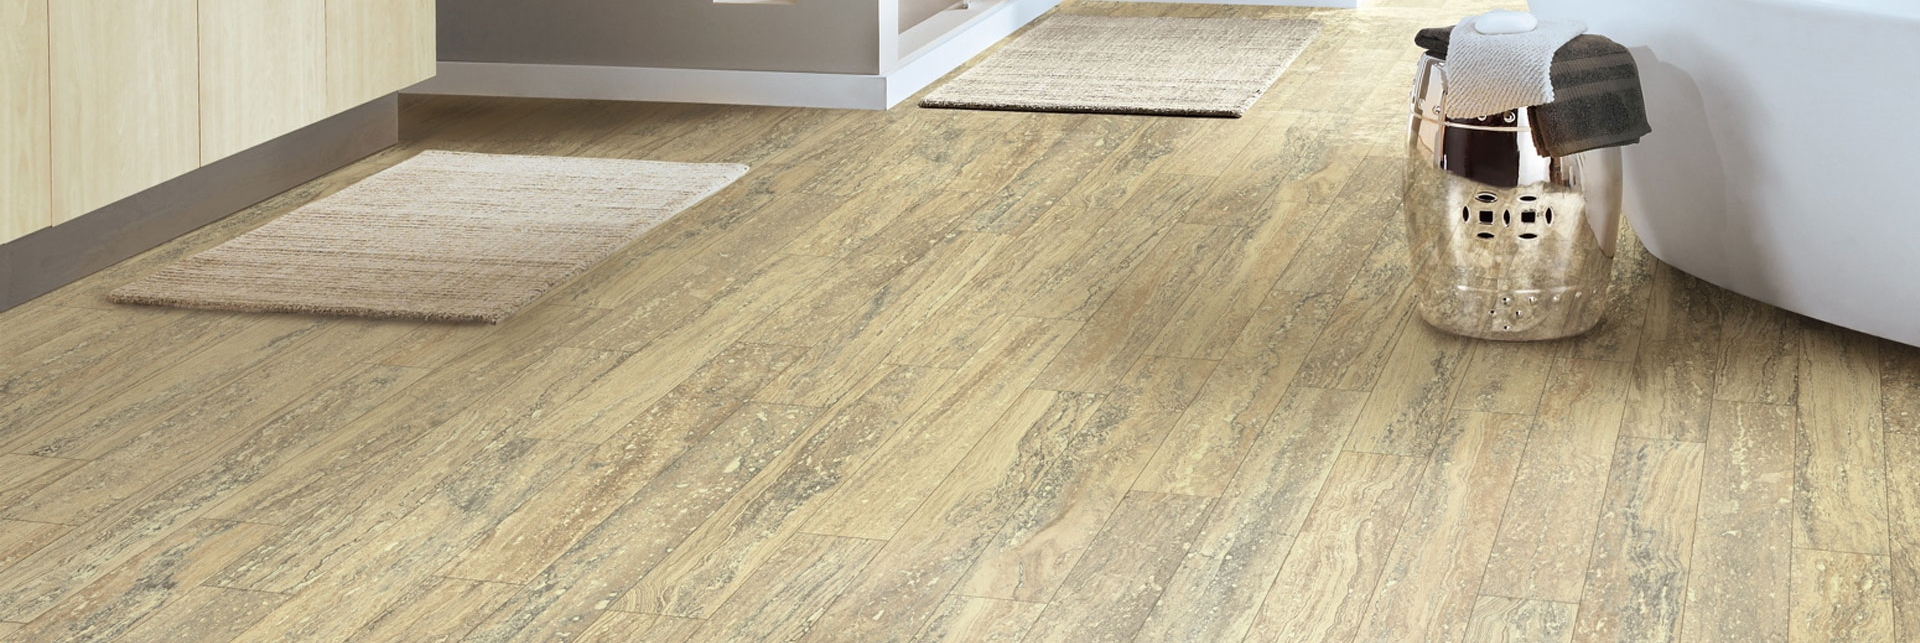 Cushioned Vinyl Flooring.jpg